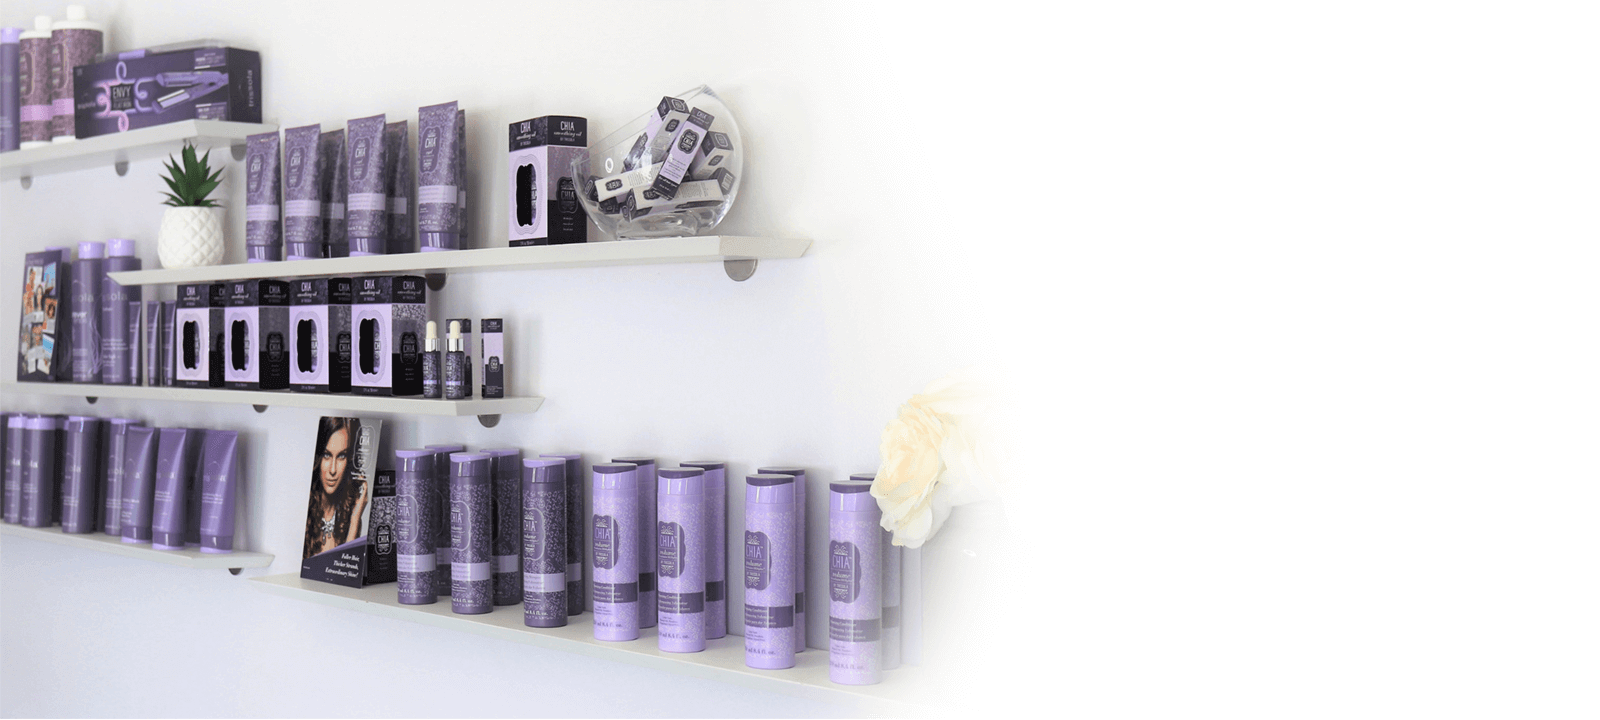 Trissola luxury hair care products